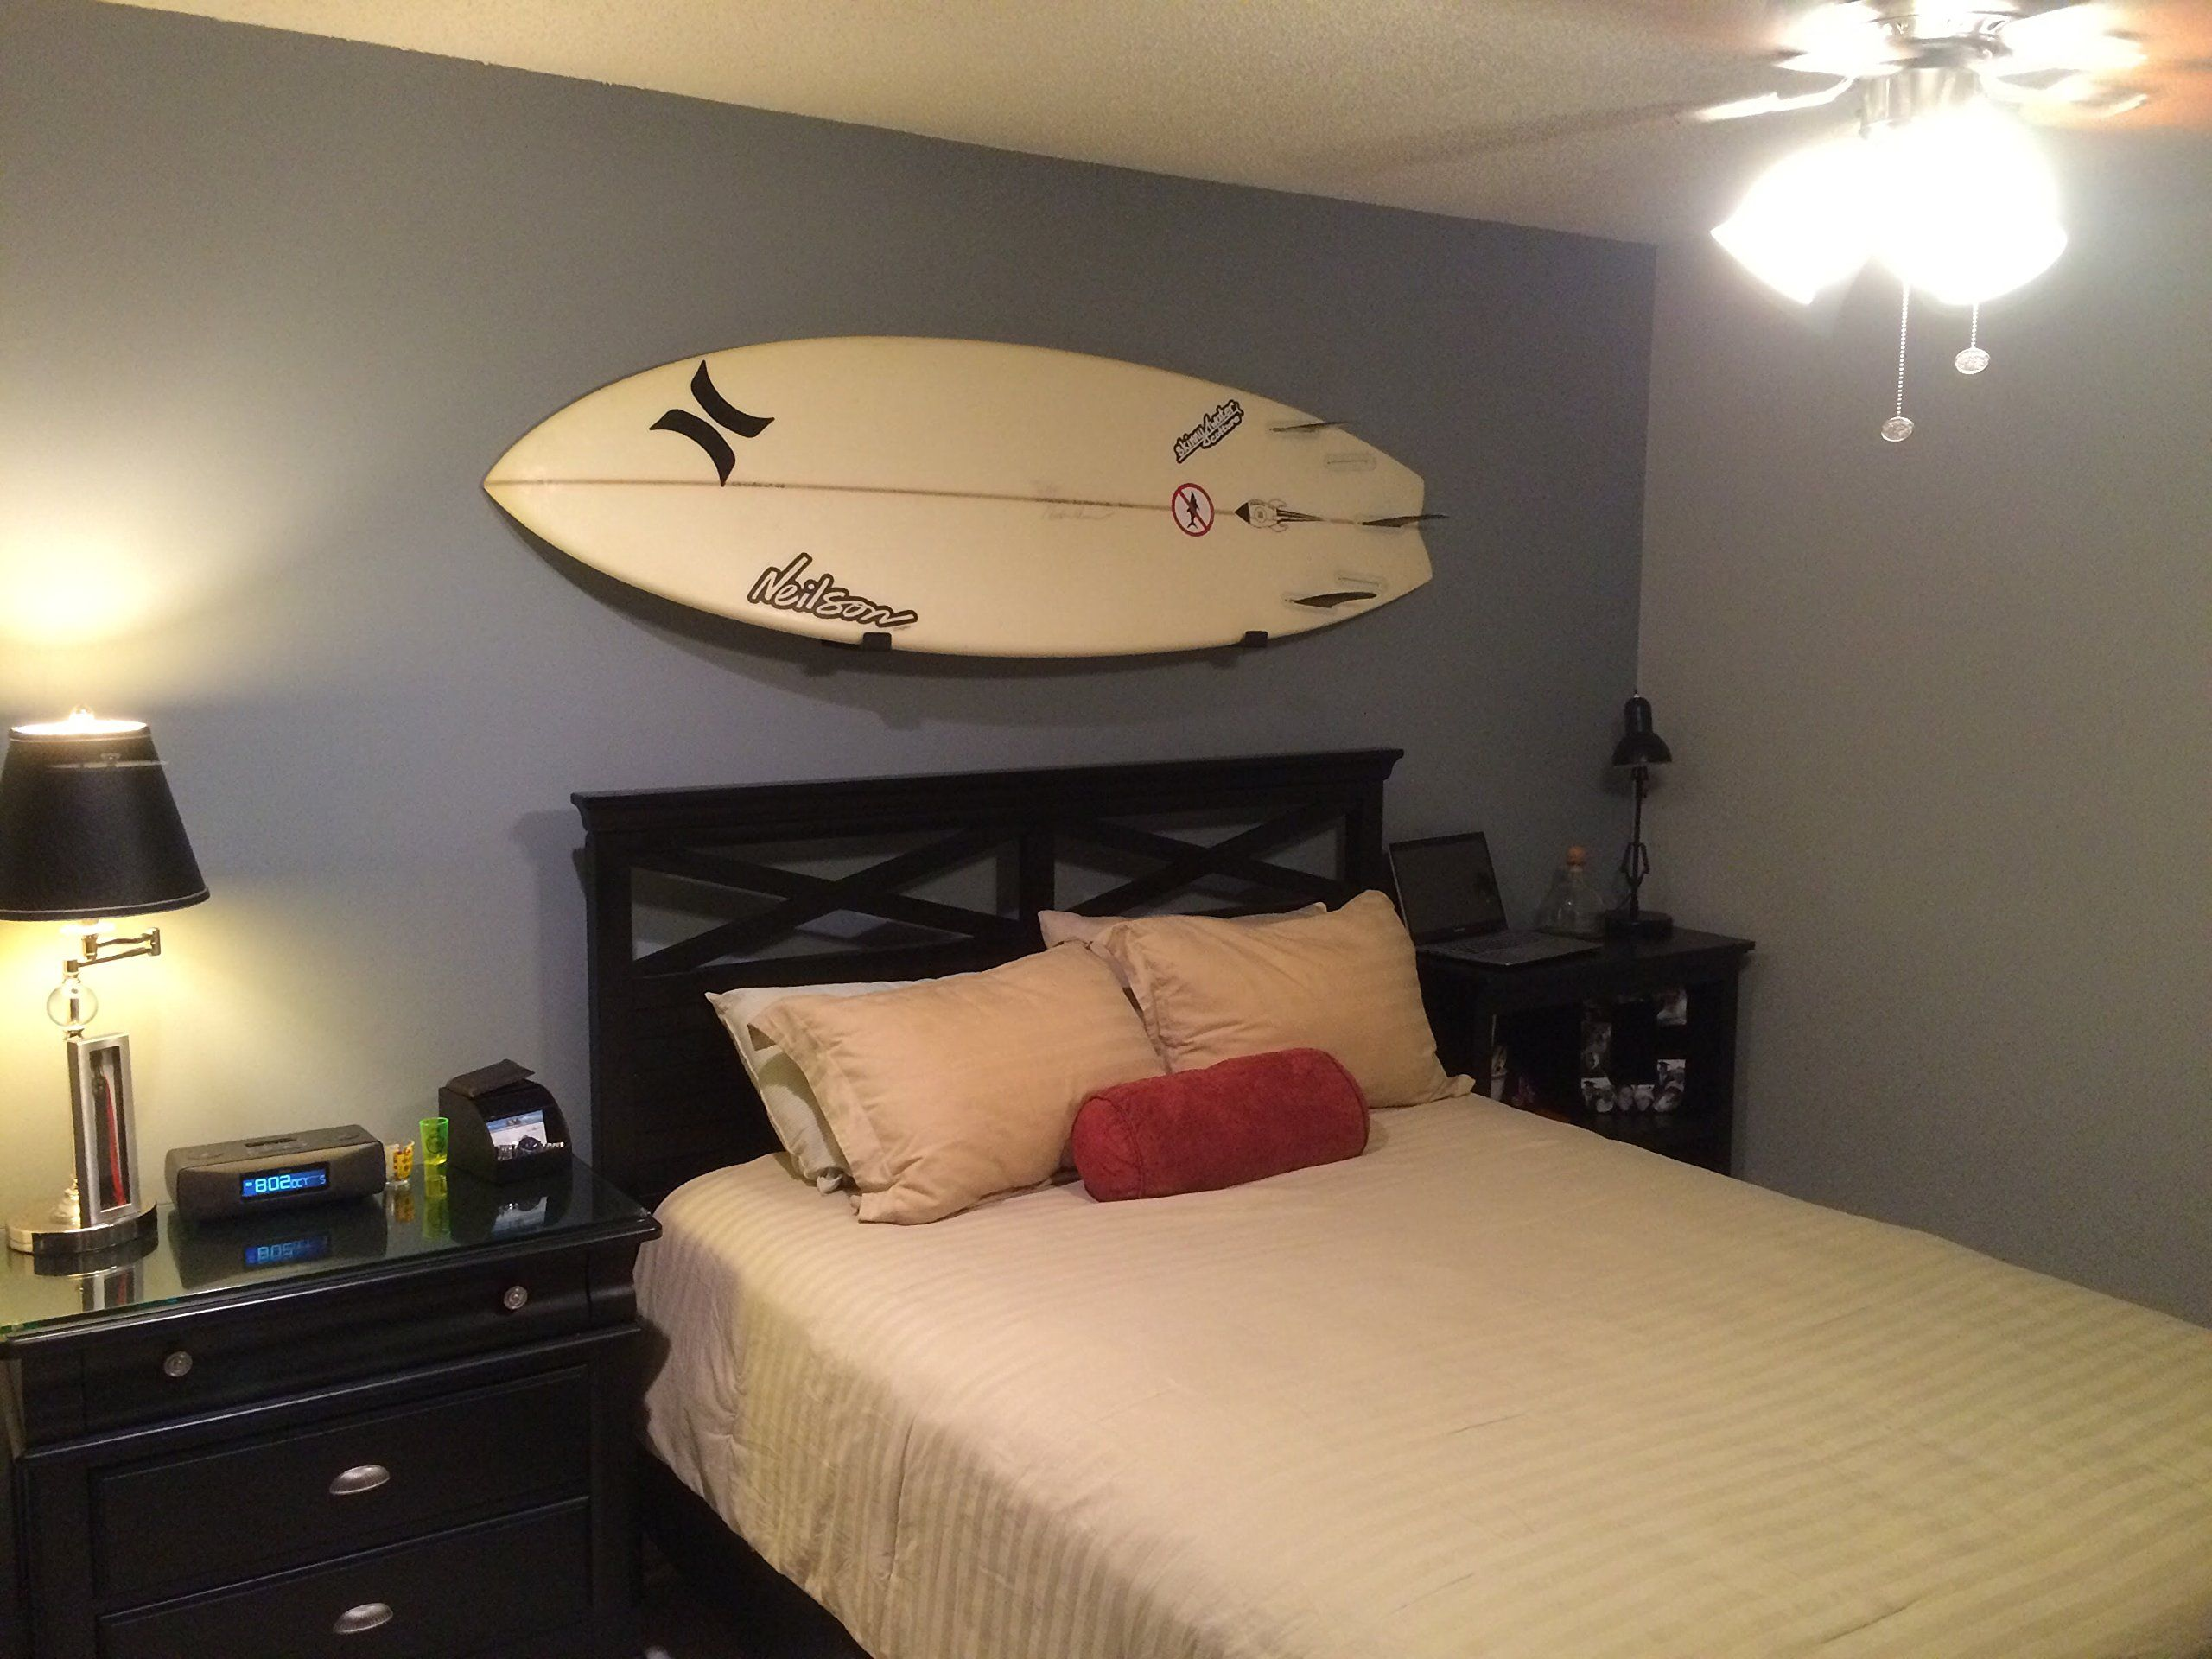 my rack to surfboards excited etsy the holds shop surfboard pin wood addition share hanger wall latest